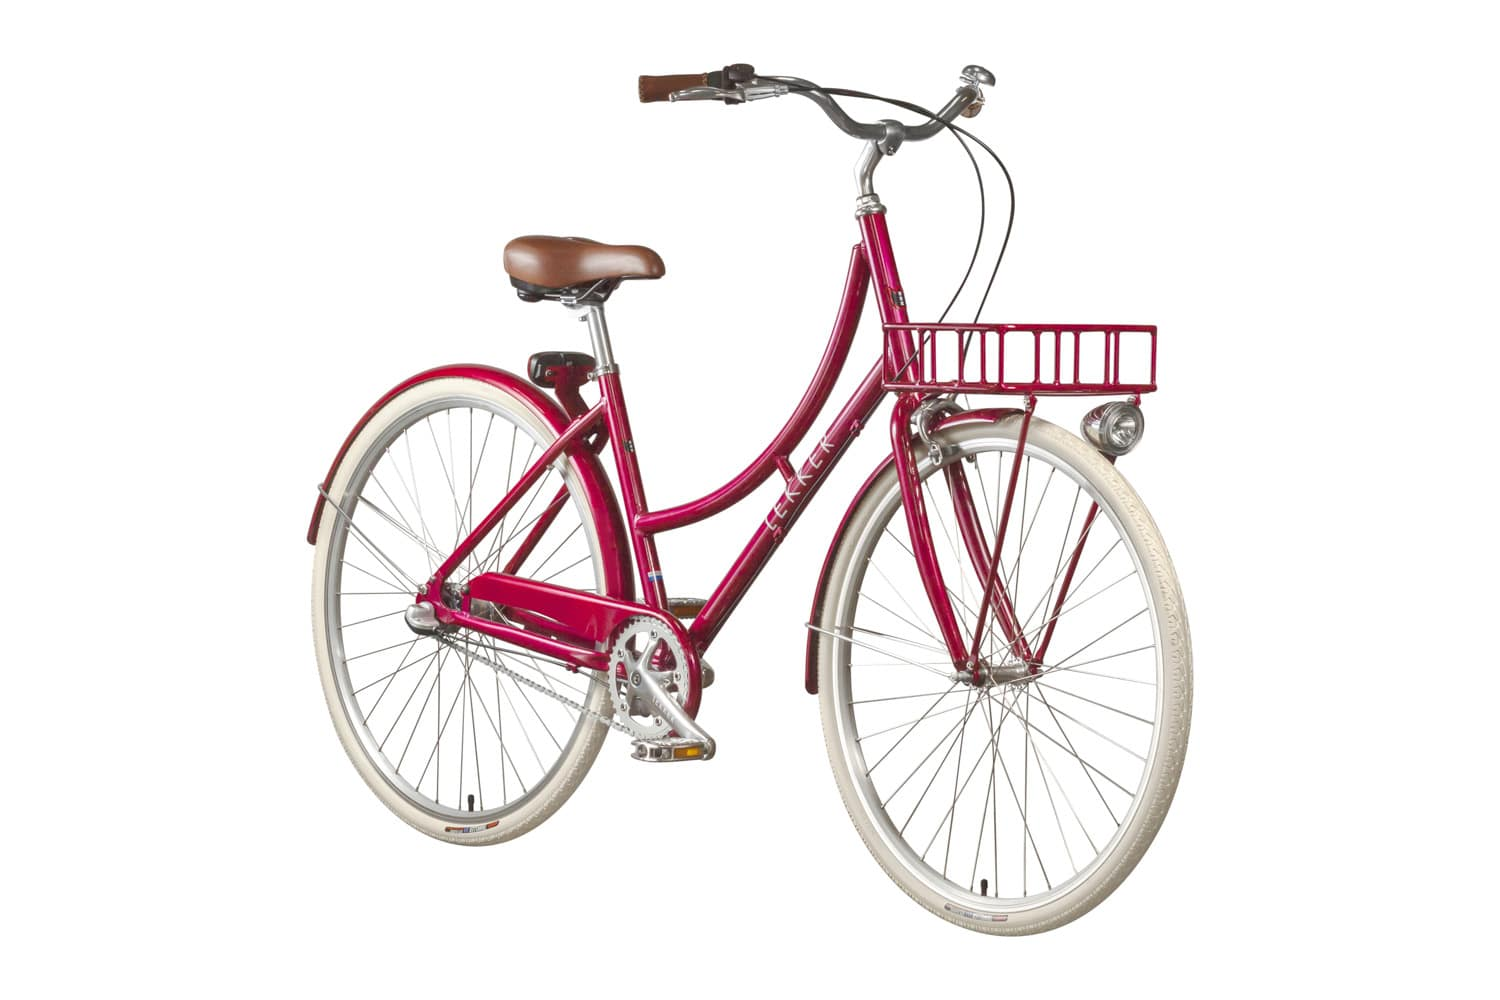 Lekker Sportief Candy Red Premium Dutch Bike Retro Vintage Bike